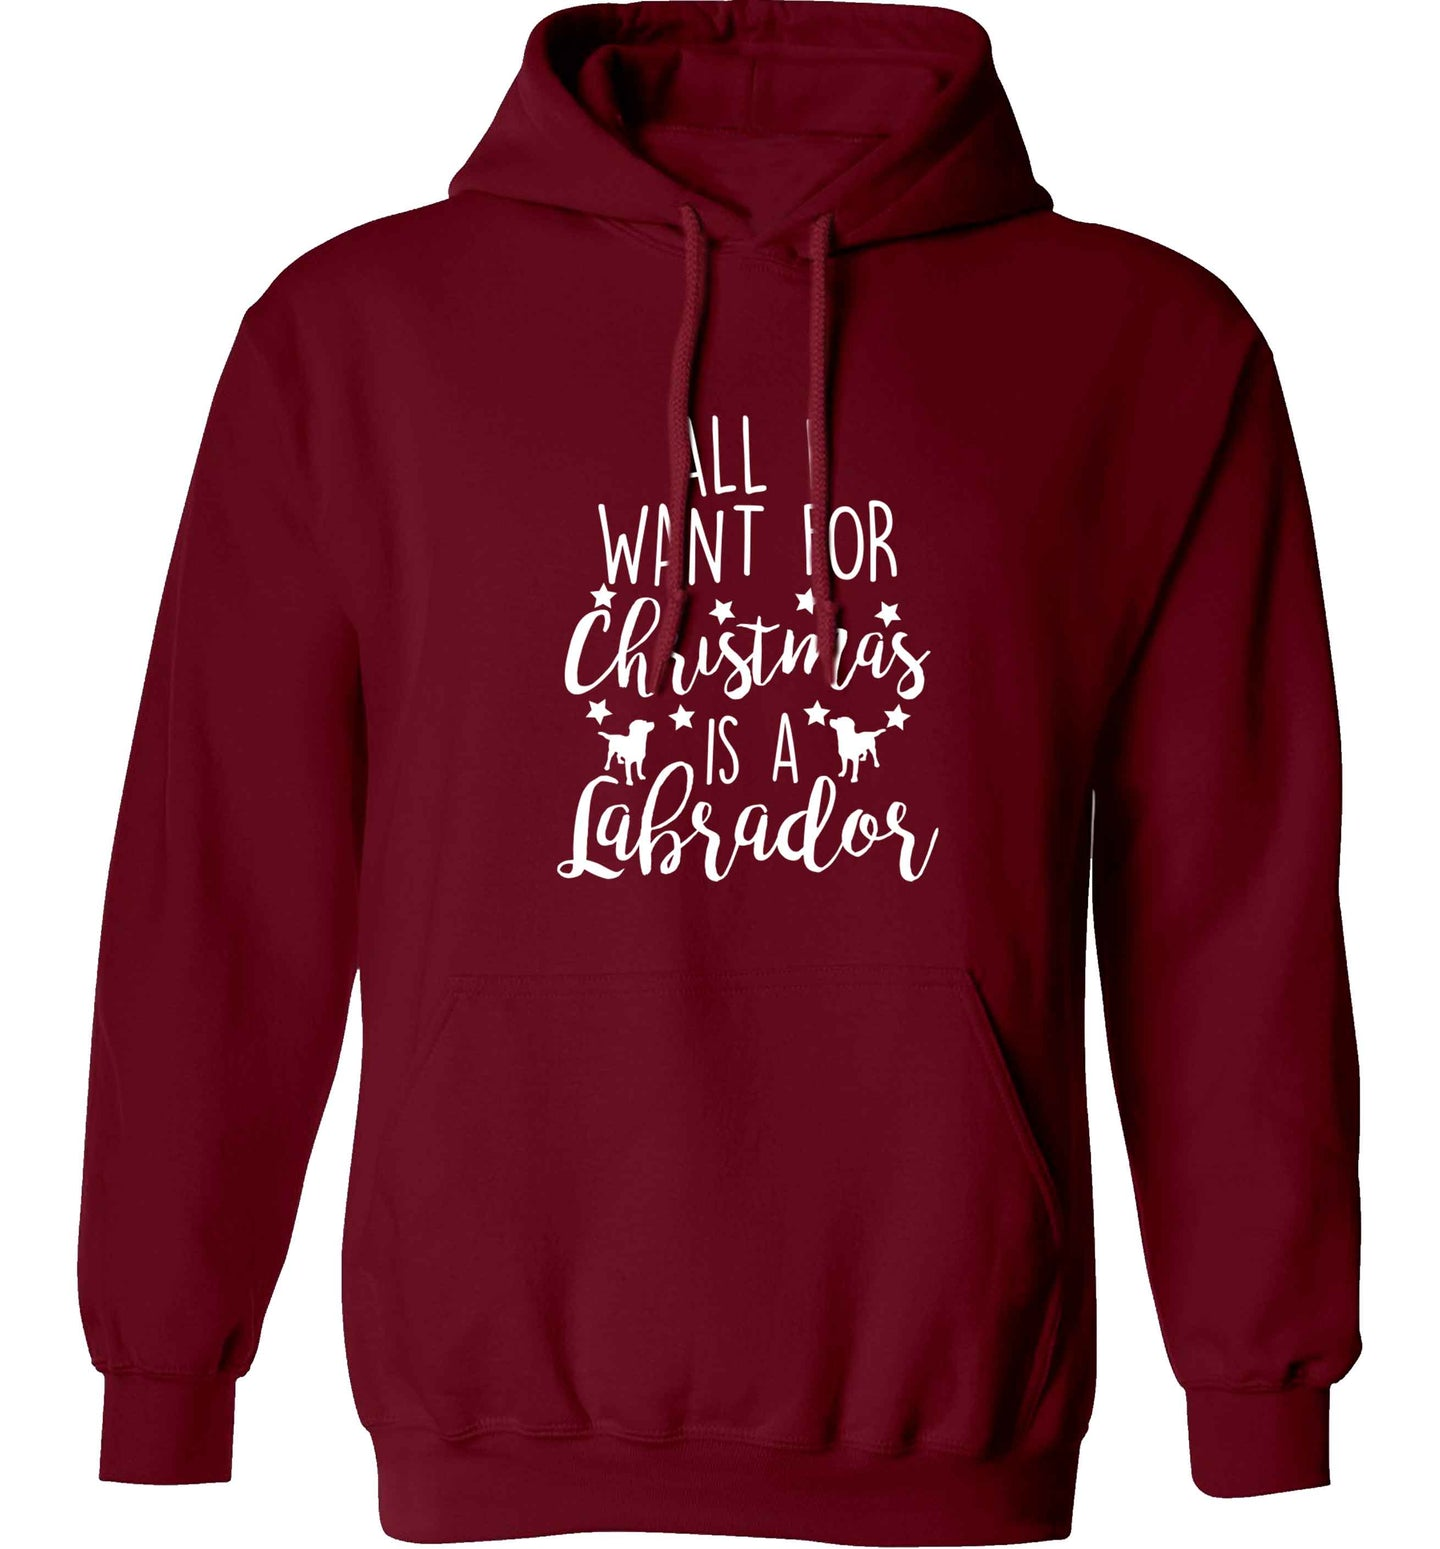 All I want for Christmas is a labrador adults unisex maroon hoodie 2XL